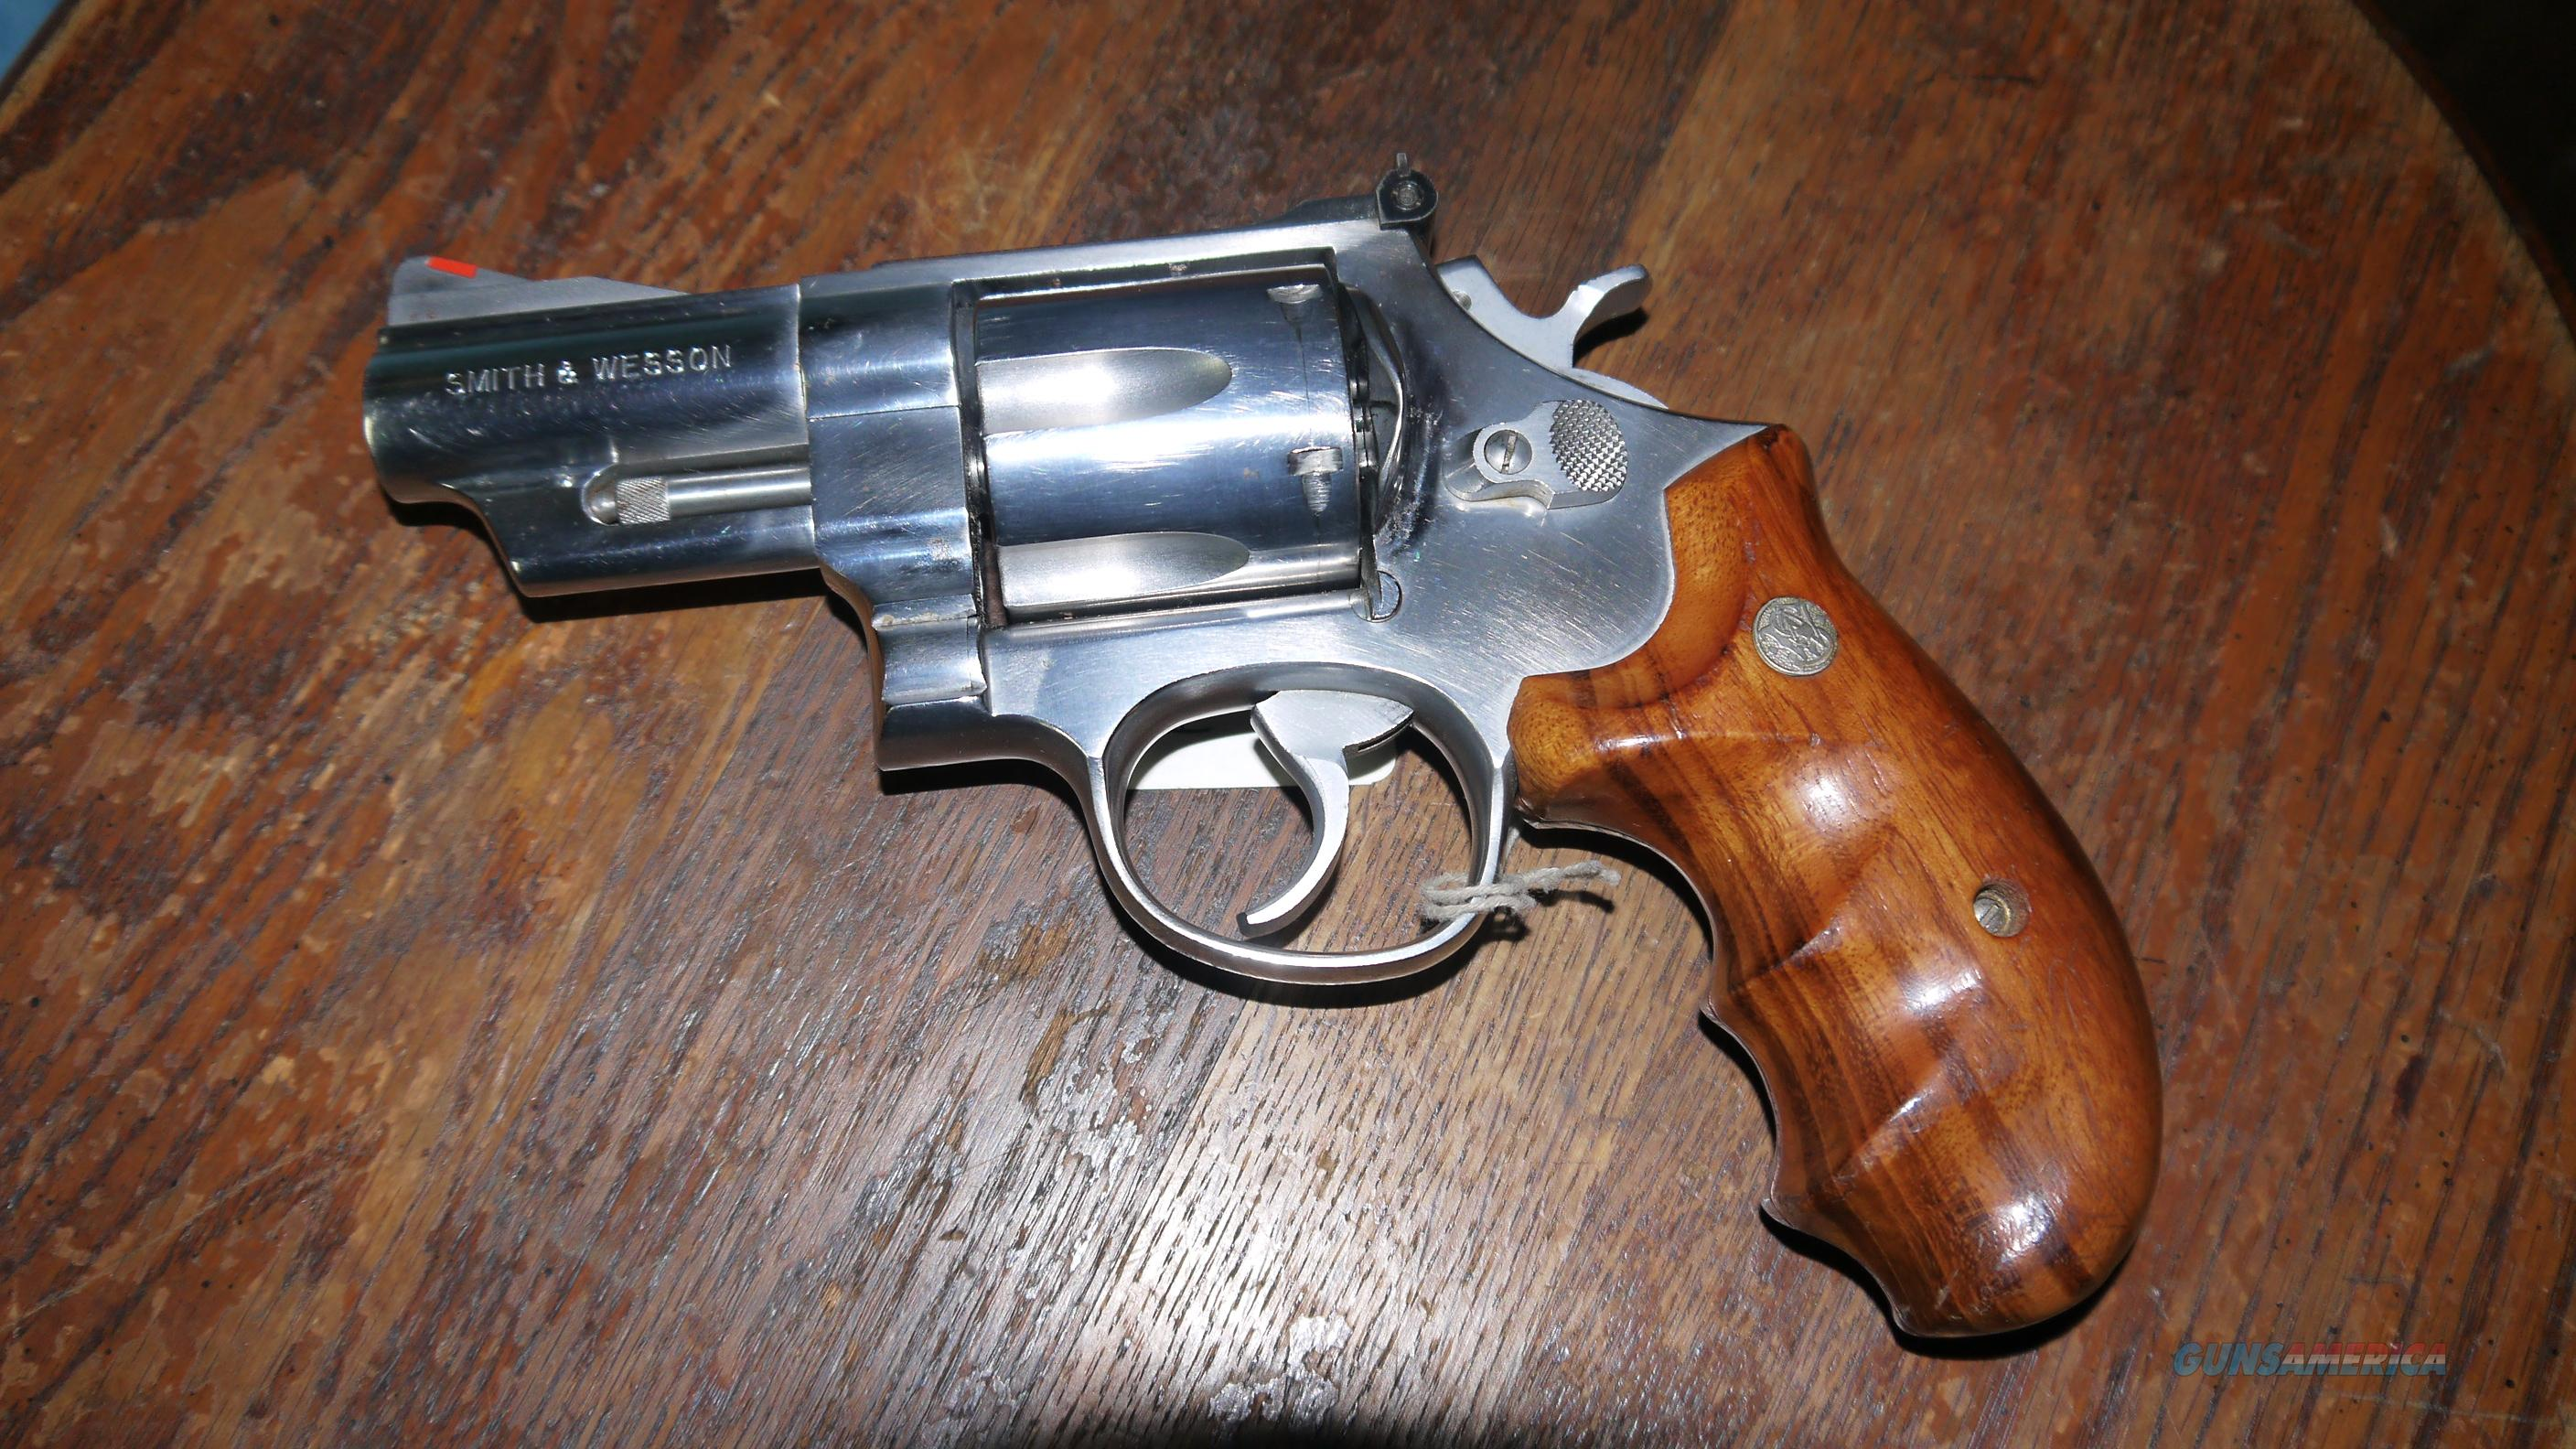 Excellent Stainless Smith & Wesson 629-1 44 Magnum 3 inch Revolver S&W  Guns > Pistols > Smith & Wesson Revolvers > Full Frame Revolver